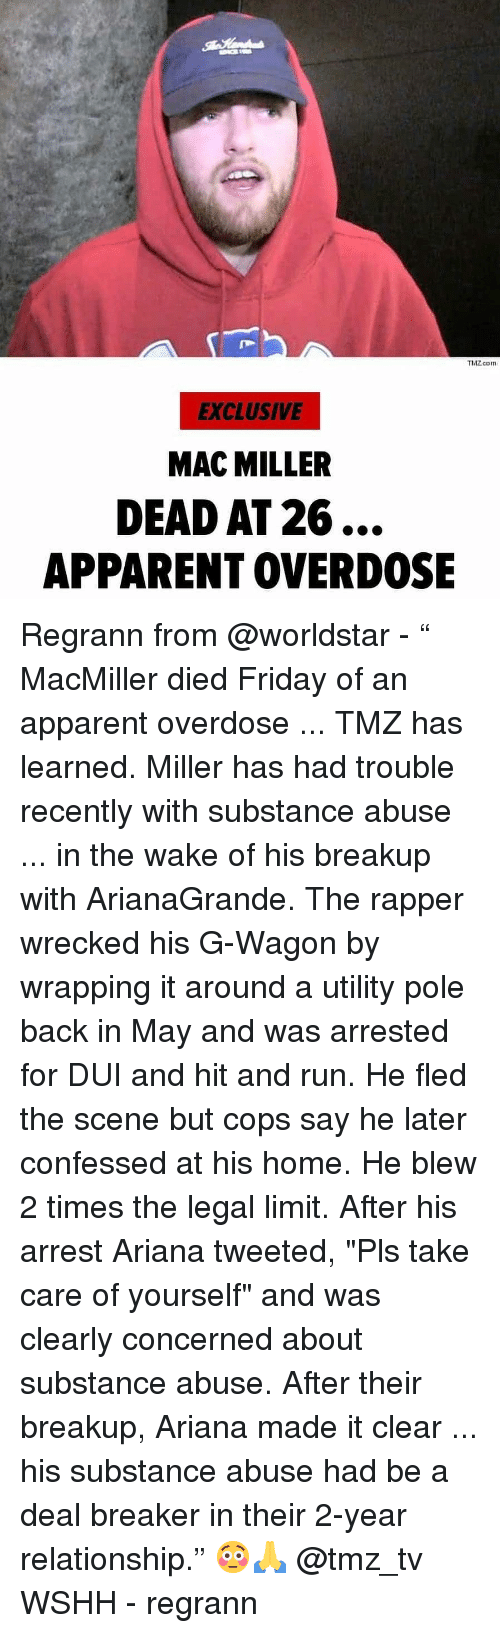 "Friday, Mac Miller, and Memes: ThZ.com  EXCLUSIVE  MAC MILLER  DEAD AT 26...  APPARENT OVERDOSE Regrann from @worldstar - "" MacMiller died Friday of an apparent overdose ... TMZ has learned. Miller has had trouble recently with substance abuse ... in the wake of his breakup with ArianaGrande. The rapper wrecked his G-Wagon by wrapping it around a utility pole back in May and was arrested for DUI and hit and run. He fled the scene but cops say he later confessed at his home. He blew 2 times the legal limit. After his arrest Ariana tweeted, ""Pls take care of yourself"" and was clearly concerned about substance abuse. After their breakup, Ariana made it clear ... his substance abuse had be a deal breaker in their 2-year relationship."" 😳🙏 @tmz_tv WSHH - regrann"